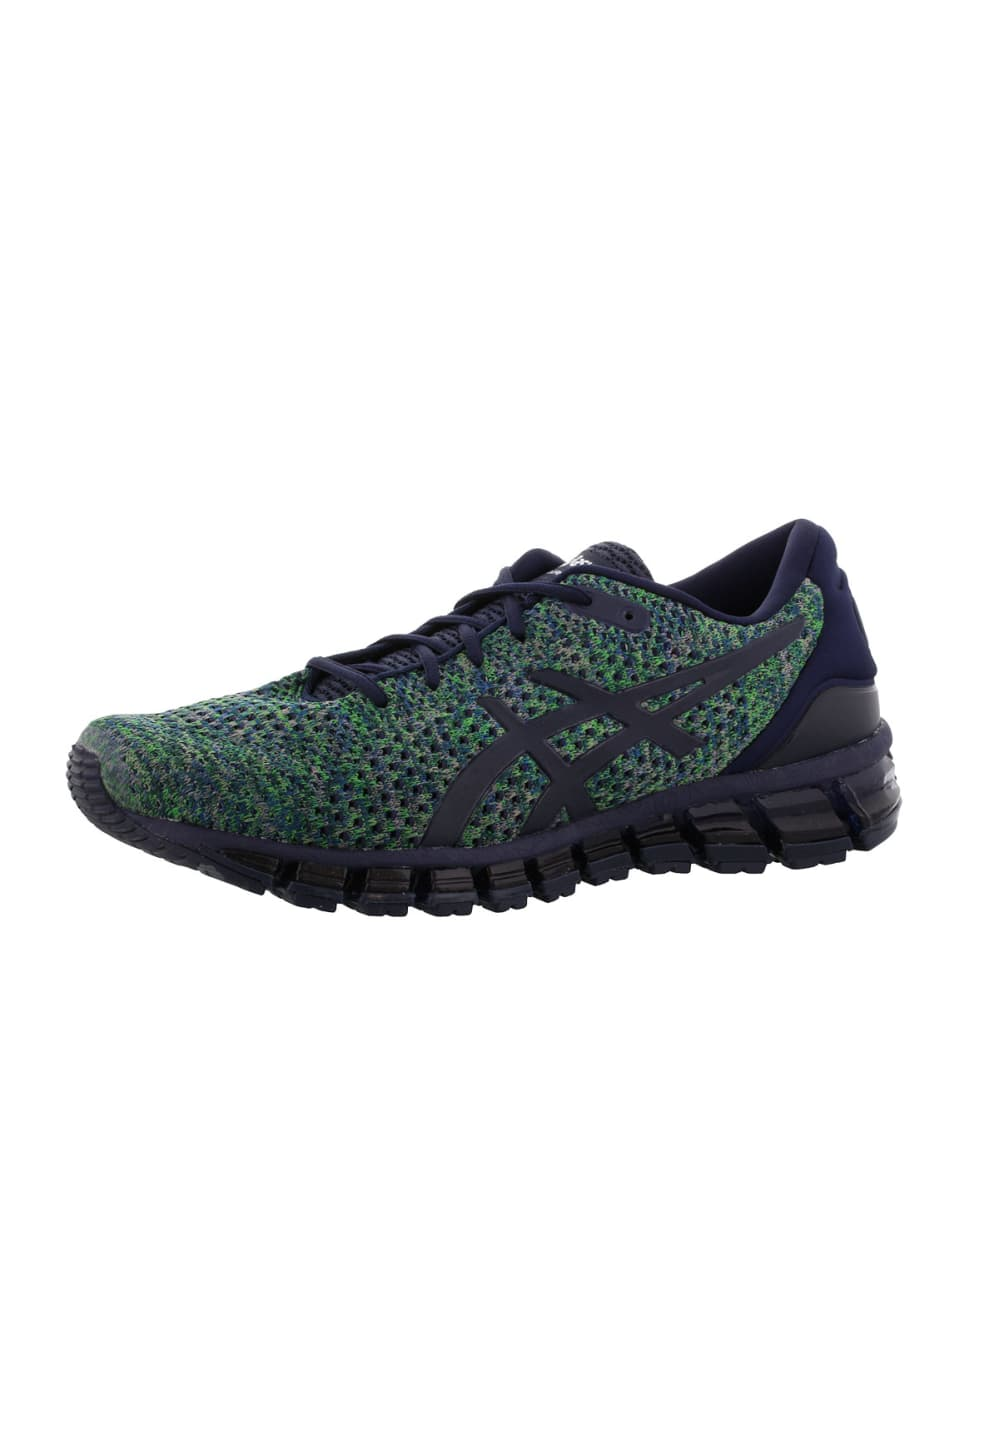 4586b4bb ASICS GEL-Quantum 360 Knit 2 - Running shoes for Men - Multicolor